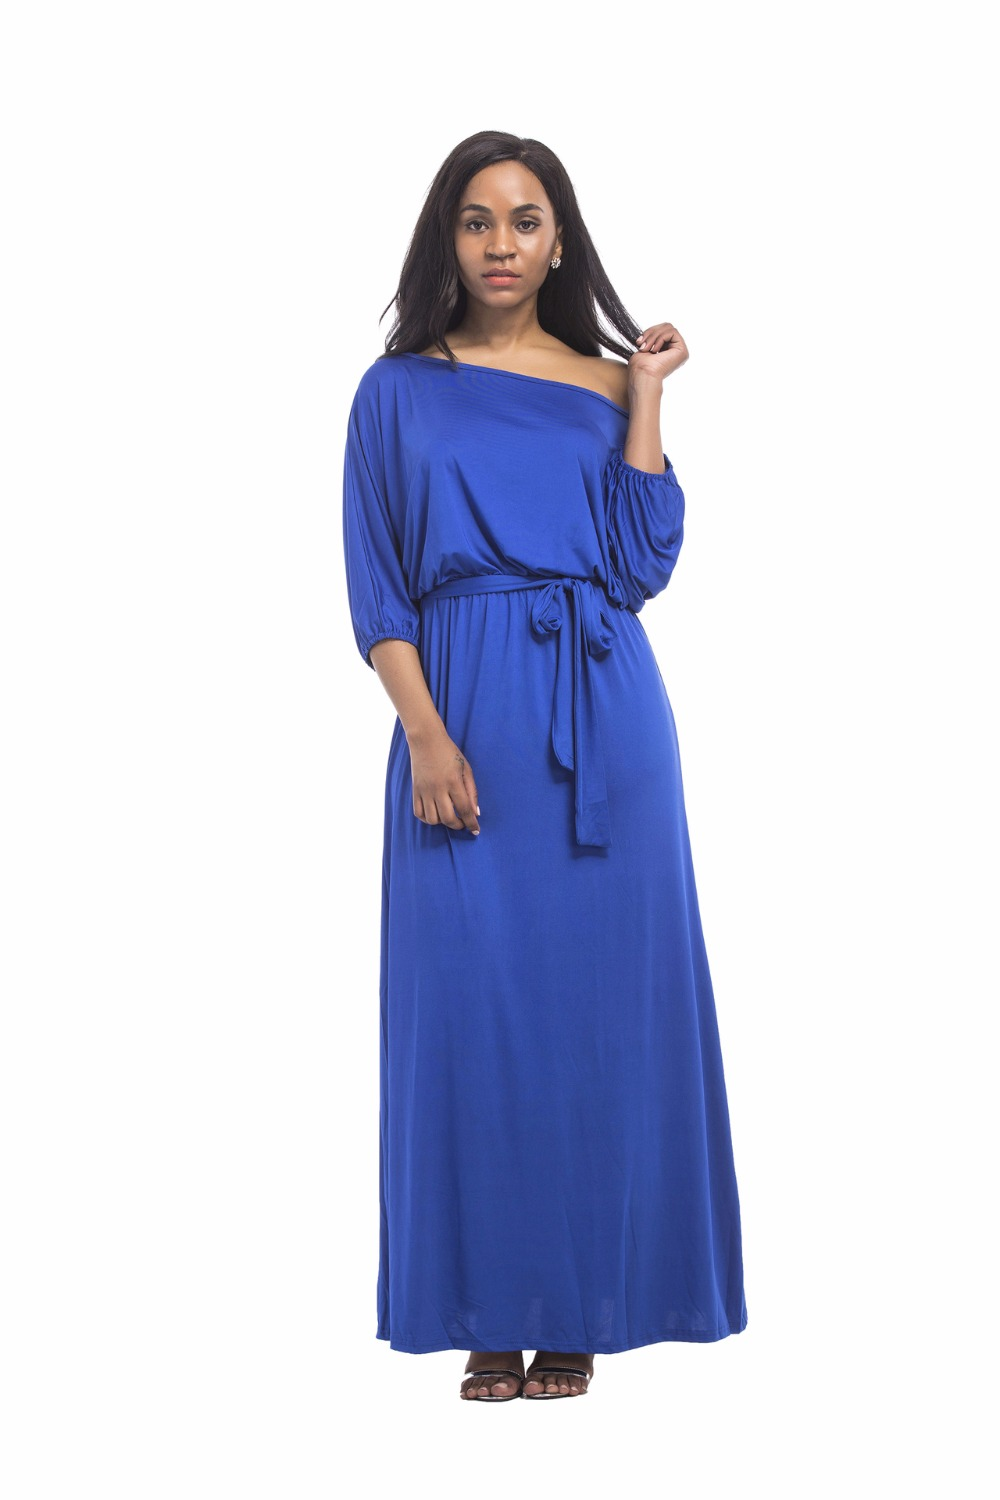 7b32a474819 Maternity Dresses For Special Occasions Plus Size - Data Dynamic AG